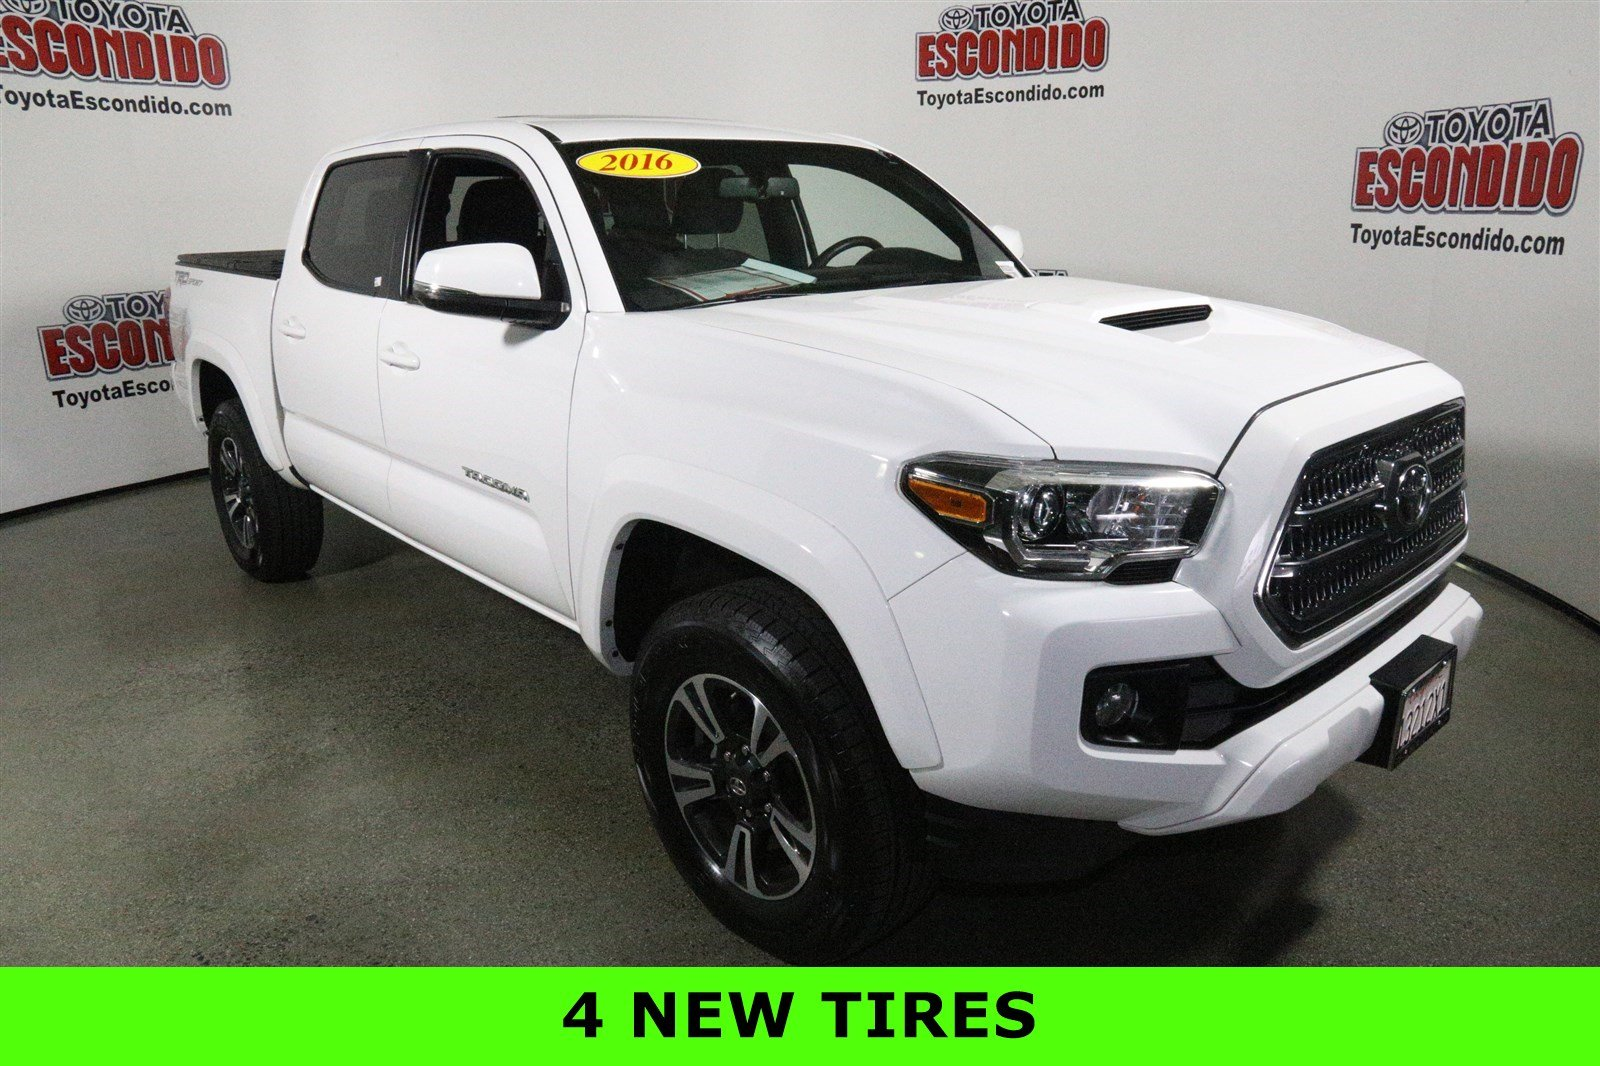 certified pre owned 2016 toyota tacoma crew cab pickup in escondido gm005309 toyota escondido. Black Bedroom Furniture Sets. Home Design Ideas